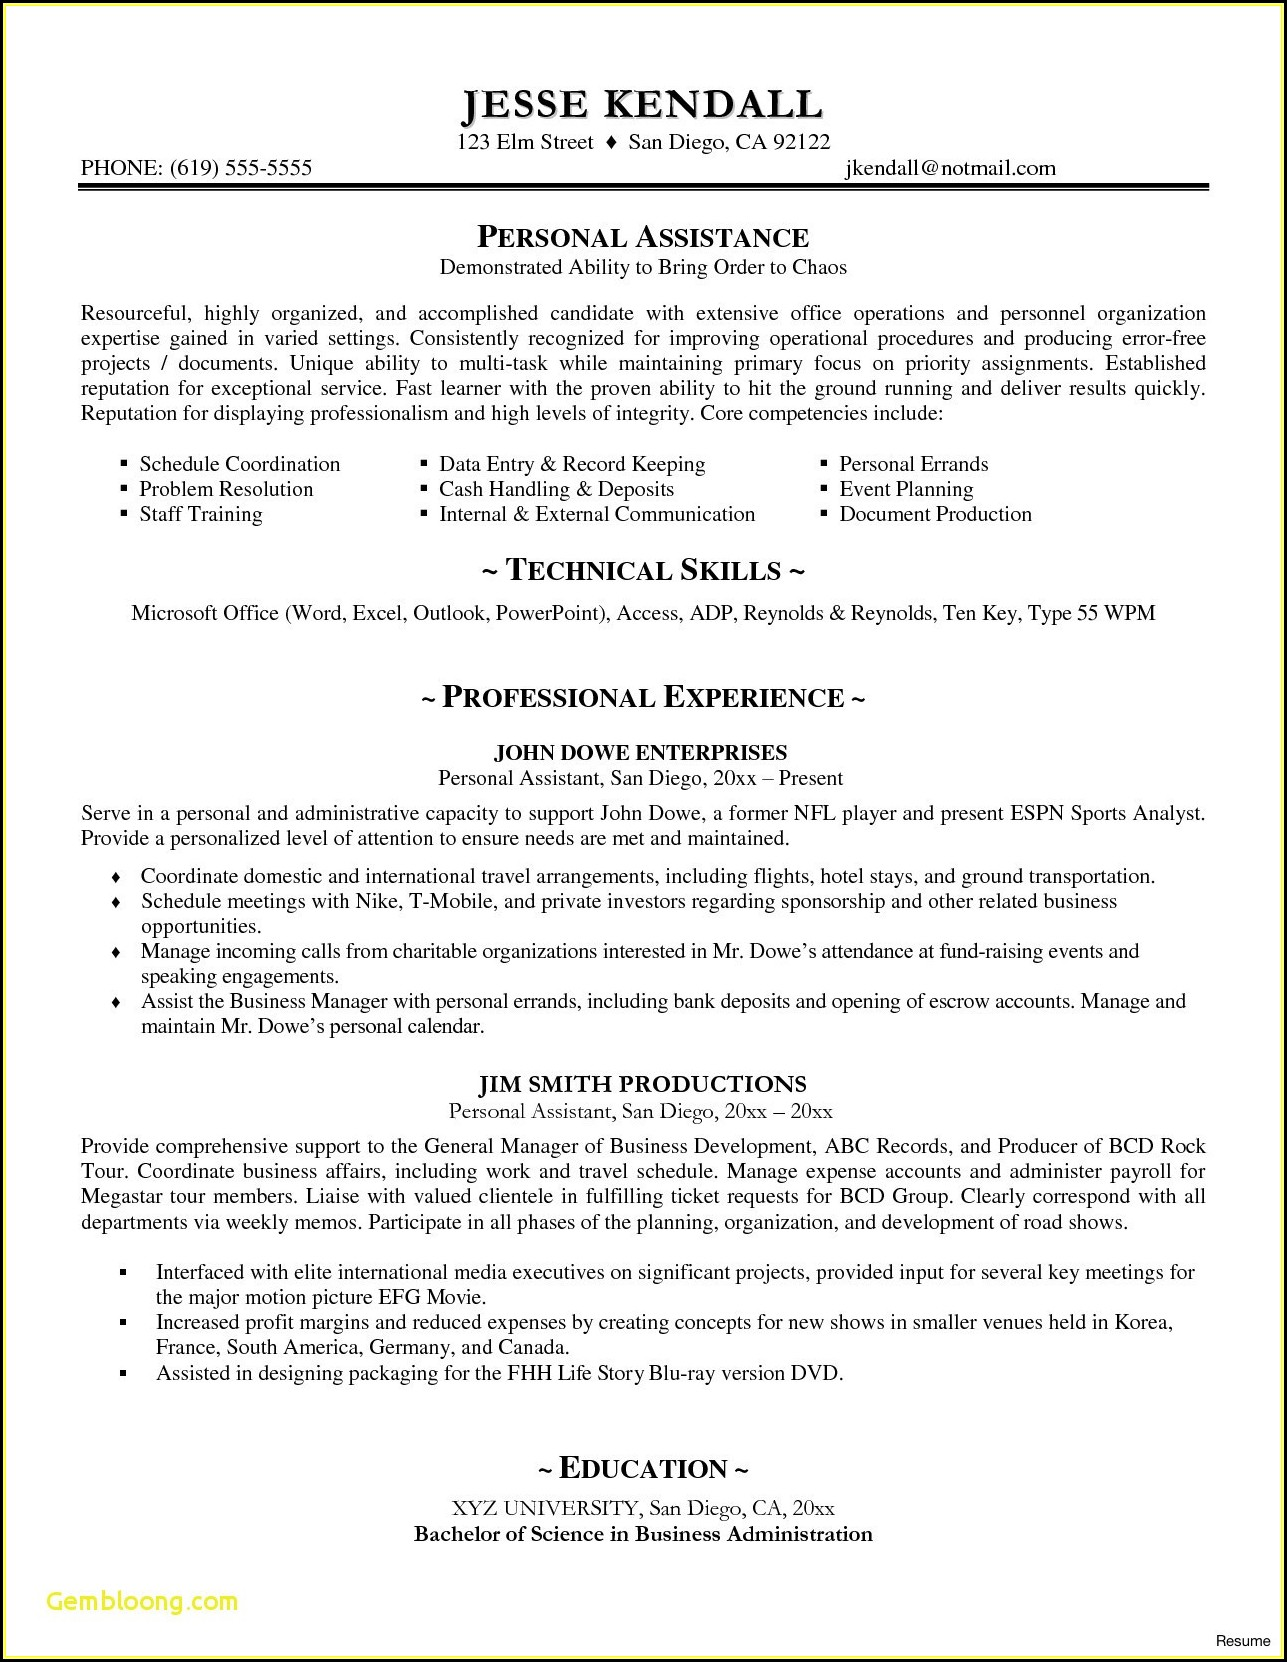 Executive Resume Examples Word